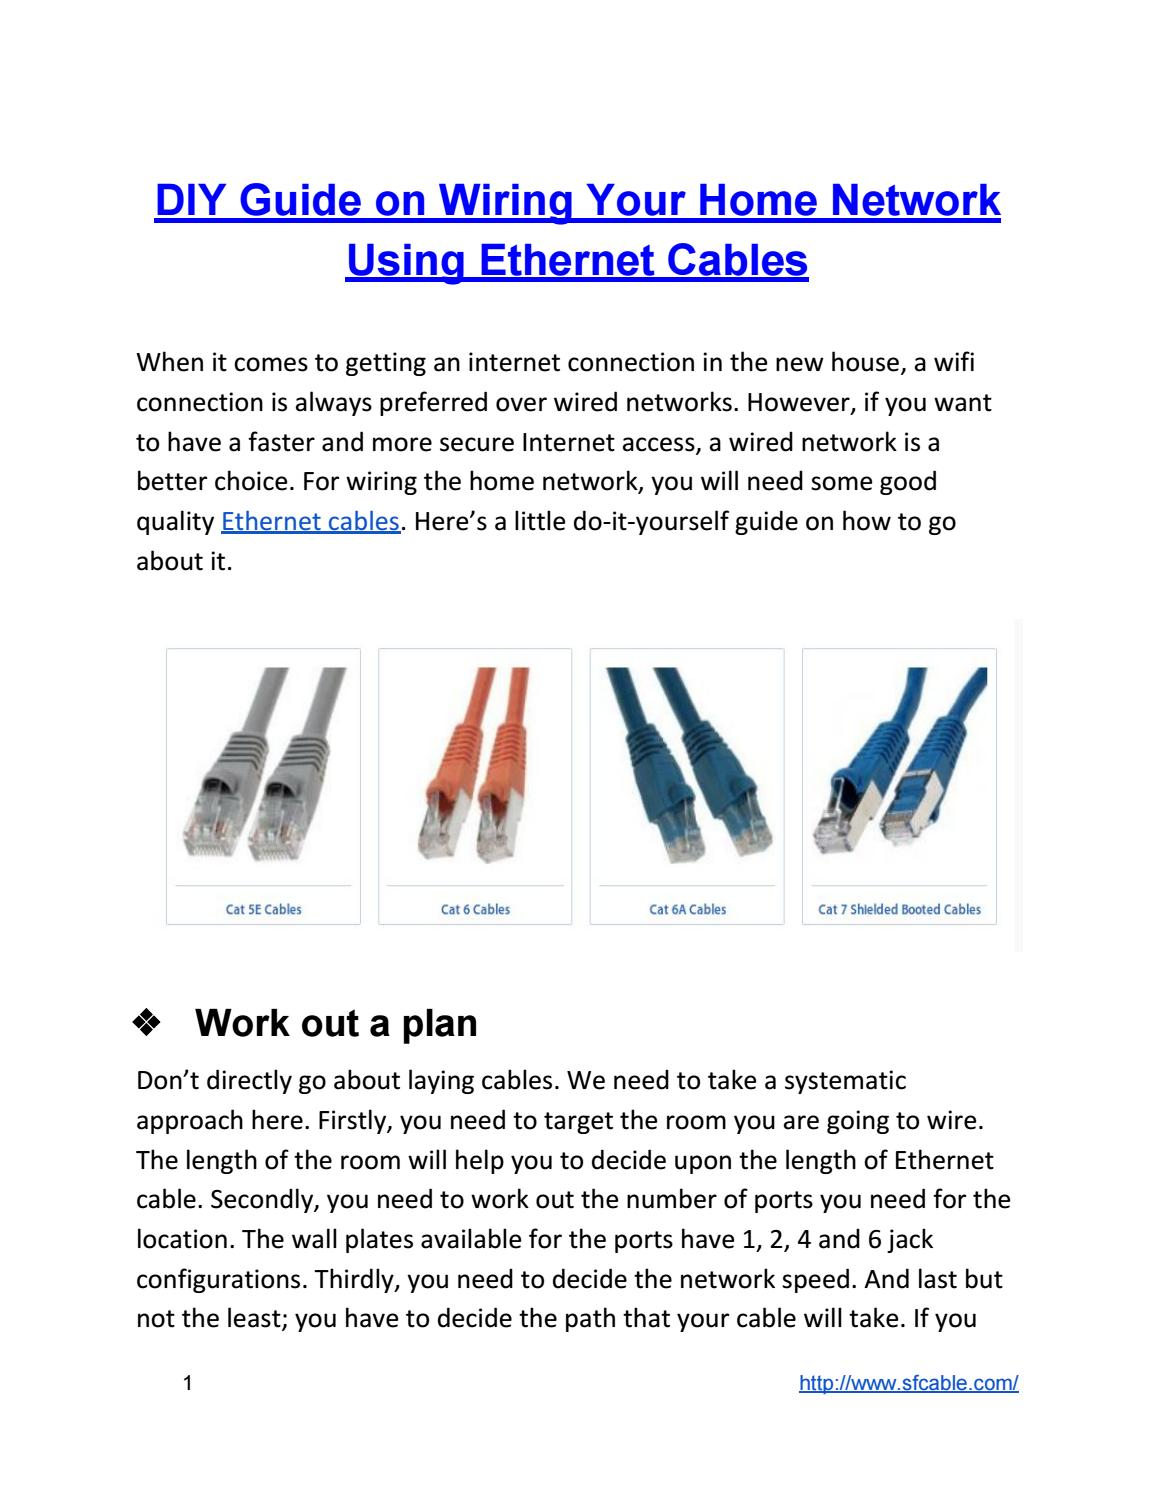 Diy Guide On Wiring Your Home Network Using Ethernet Cables By Sf Cable Inc Issuu